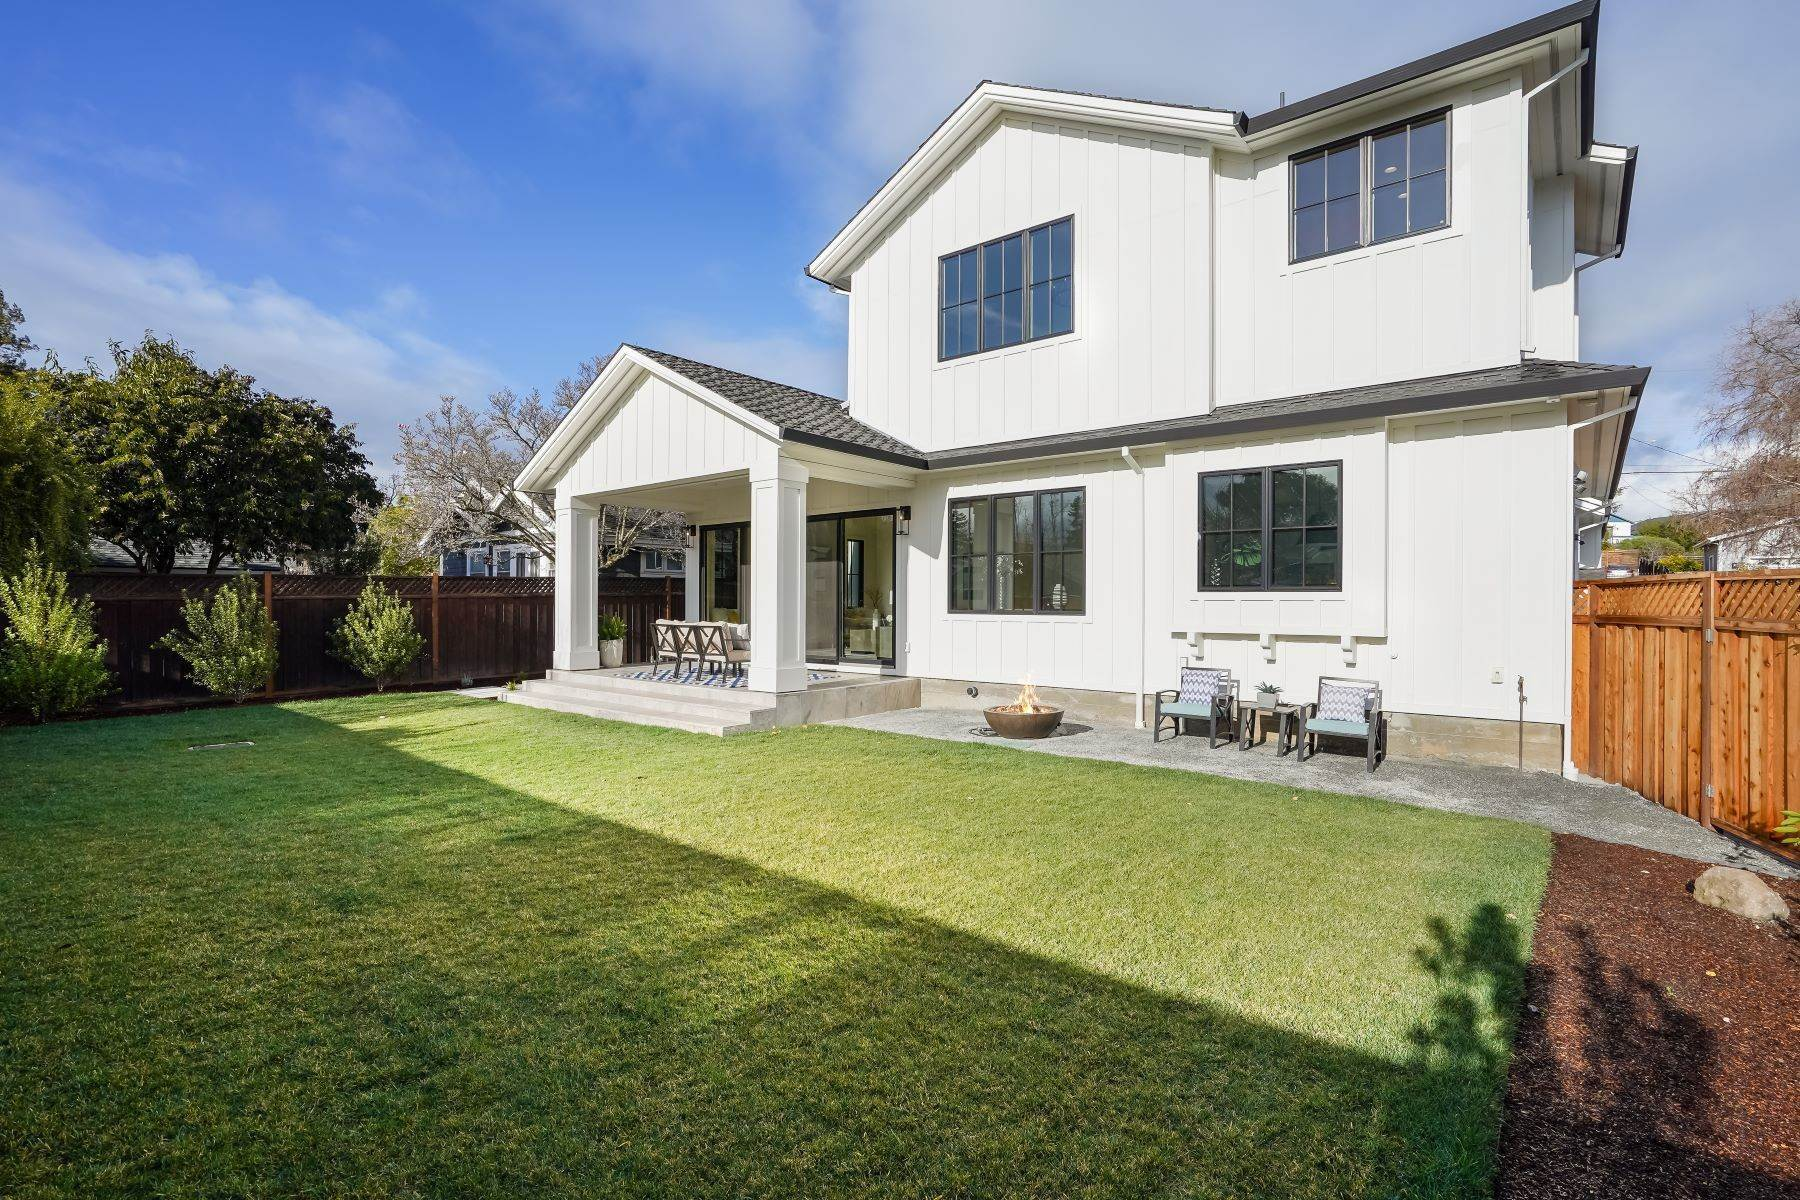 47. Single Family Homes for Sale at Modern Farmhouse in Coveted Mount Carmel 538 Quartz Street Redwood City, California 94062 United States